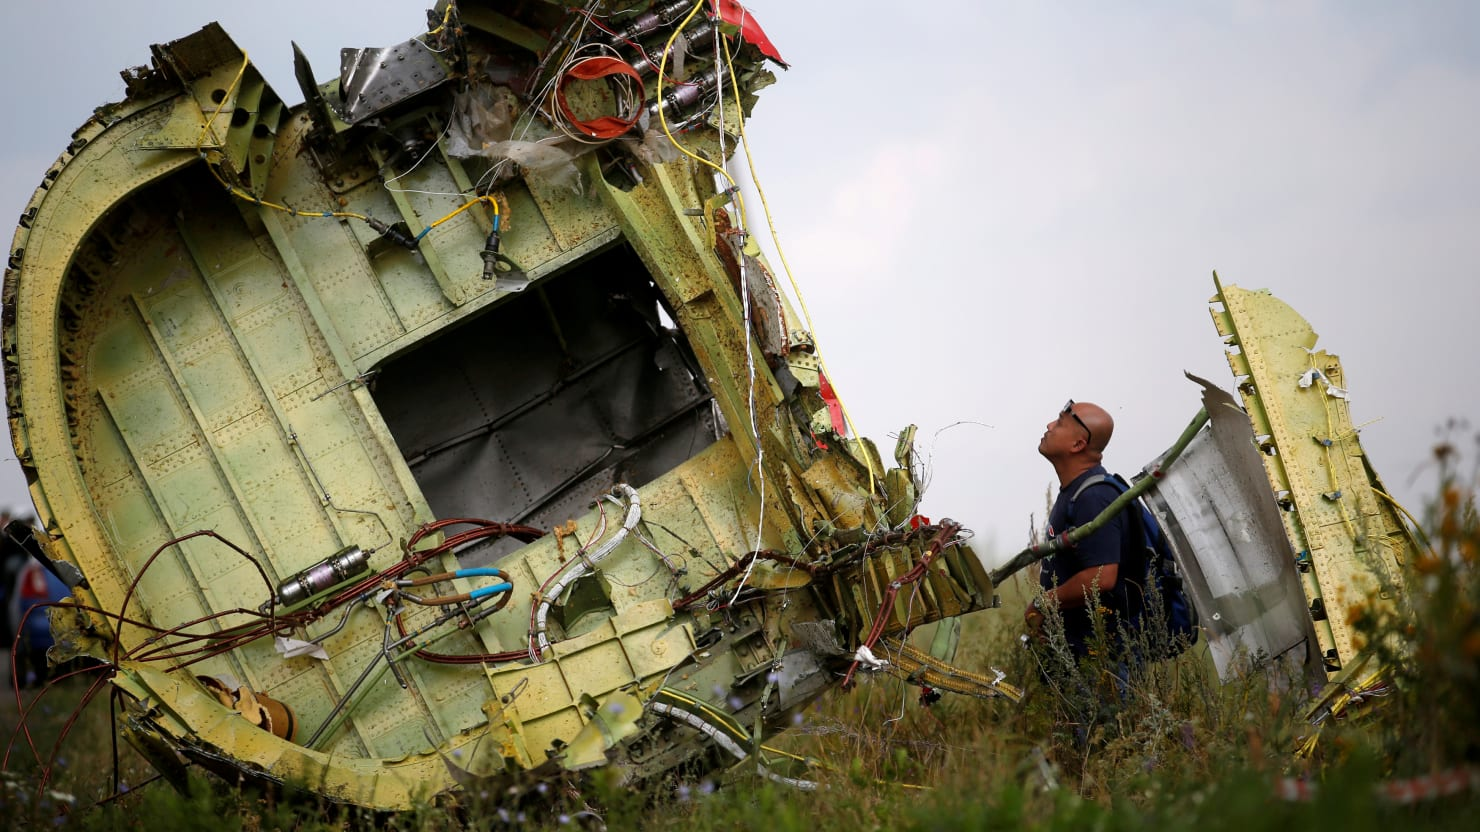 Malaysian Prime Minister Denies Clear Evidence Russia Was Behind Downing of MH17